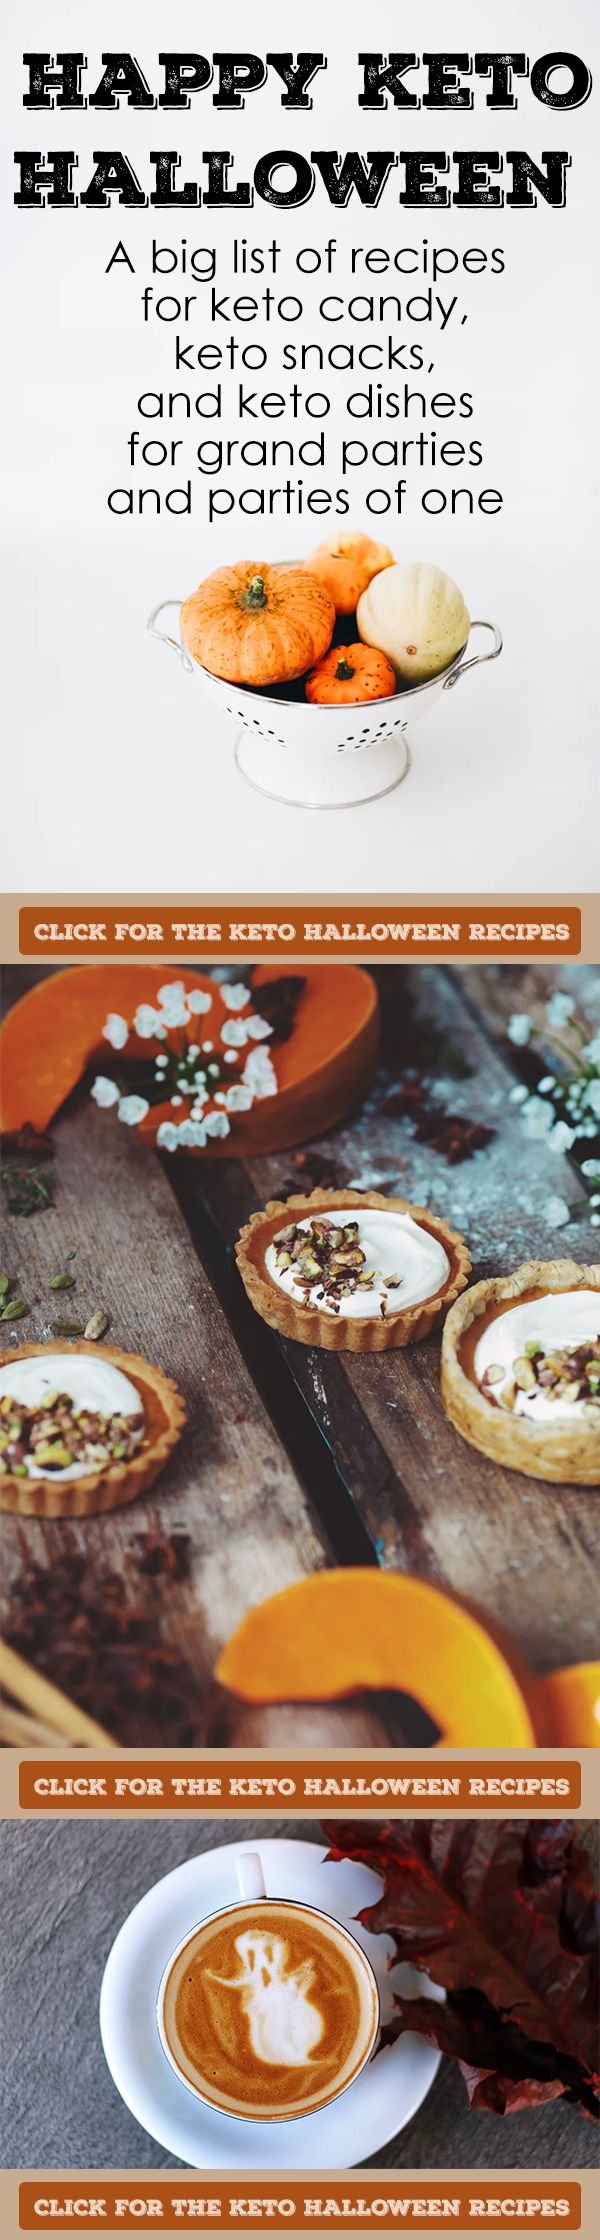 Keto Halloween Recipes! A giant list of keto candy, keto snacks, and keto dishes meant for a crowd or just a party of one.